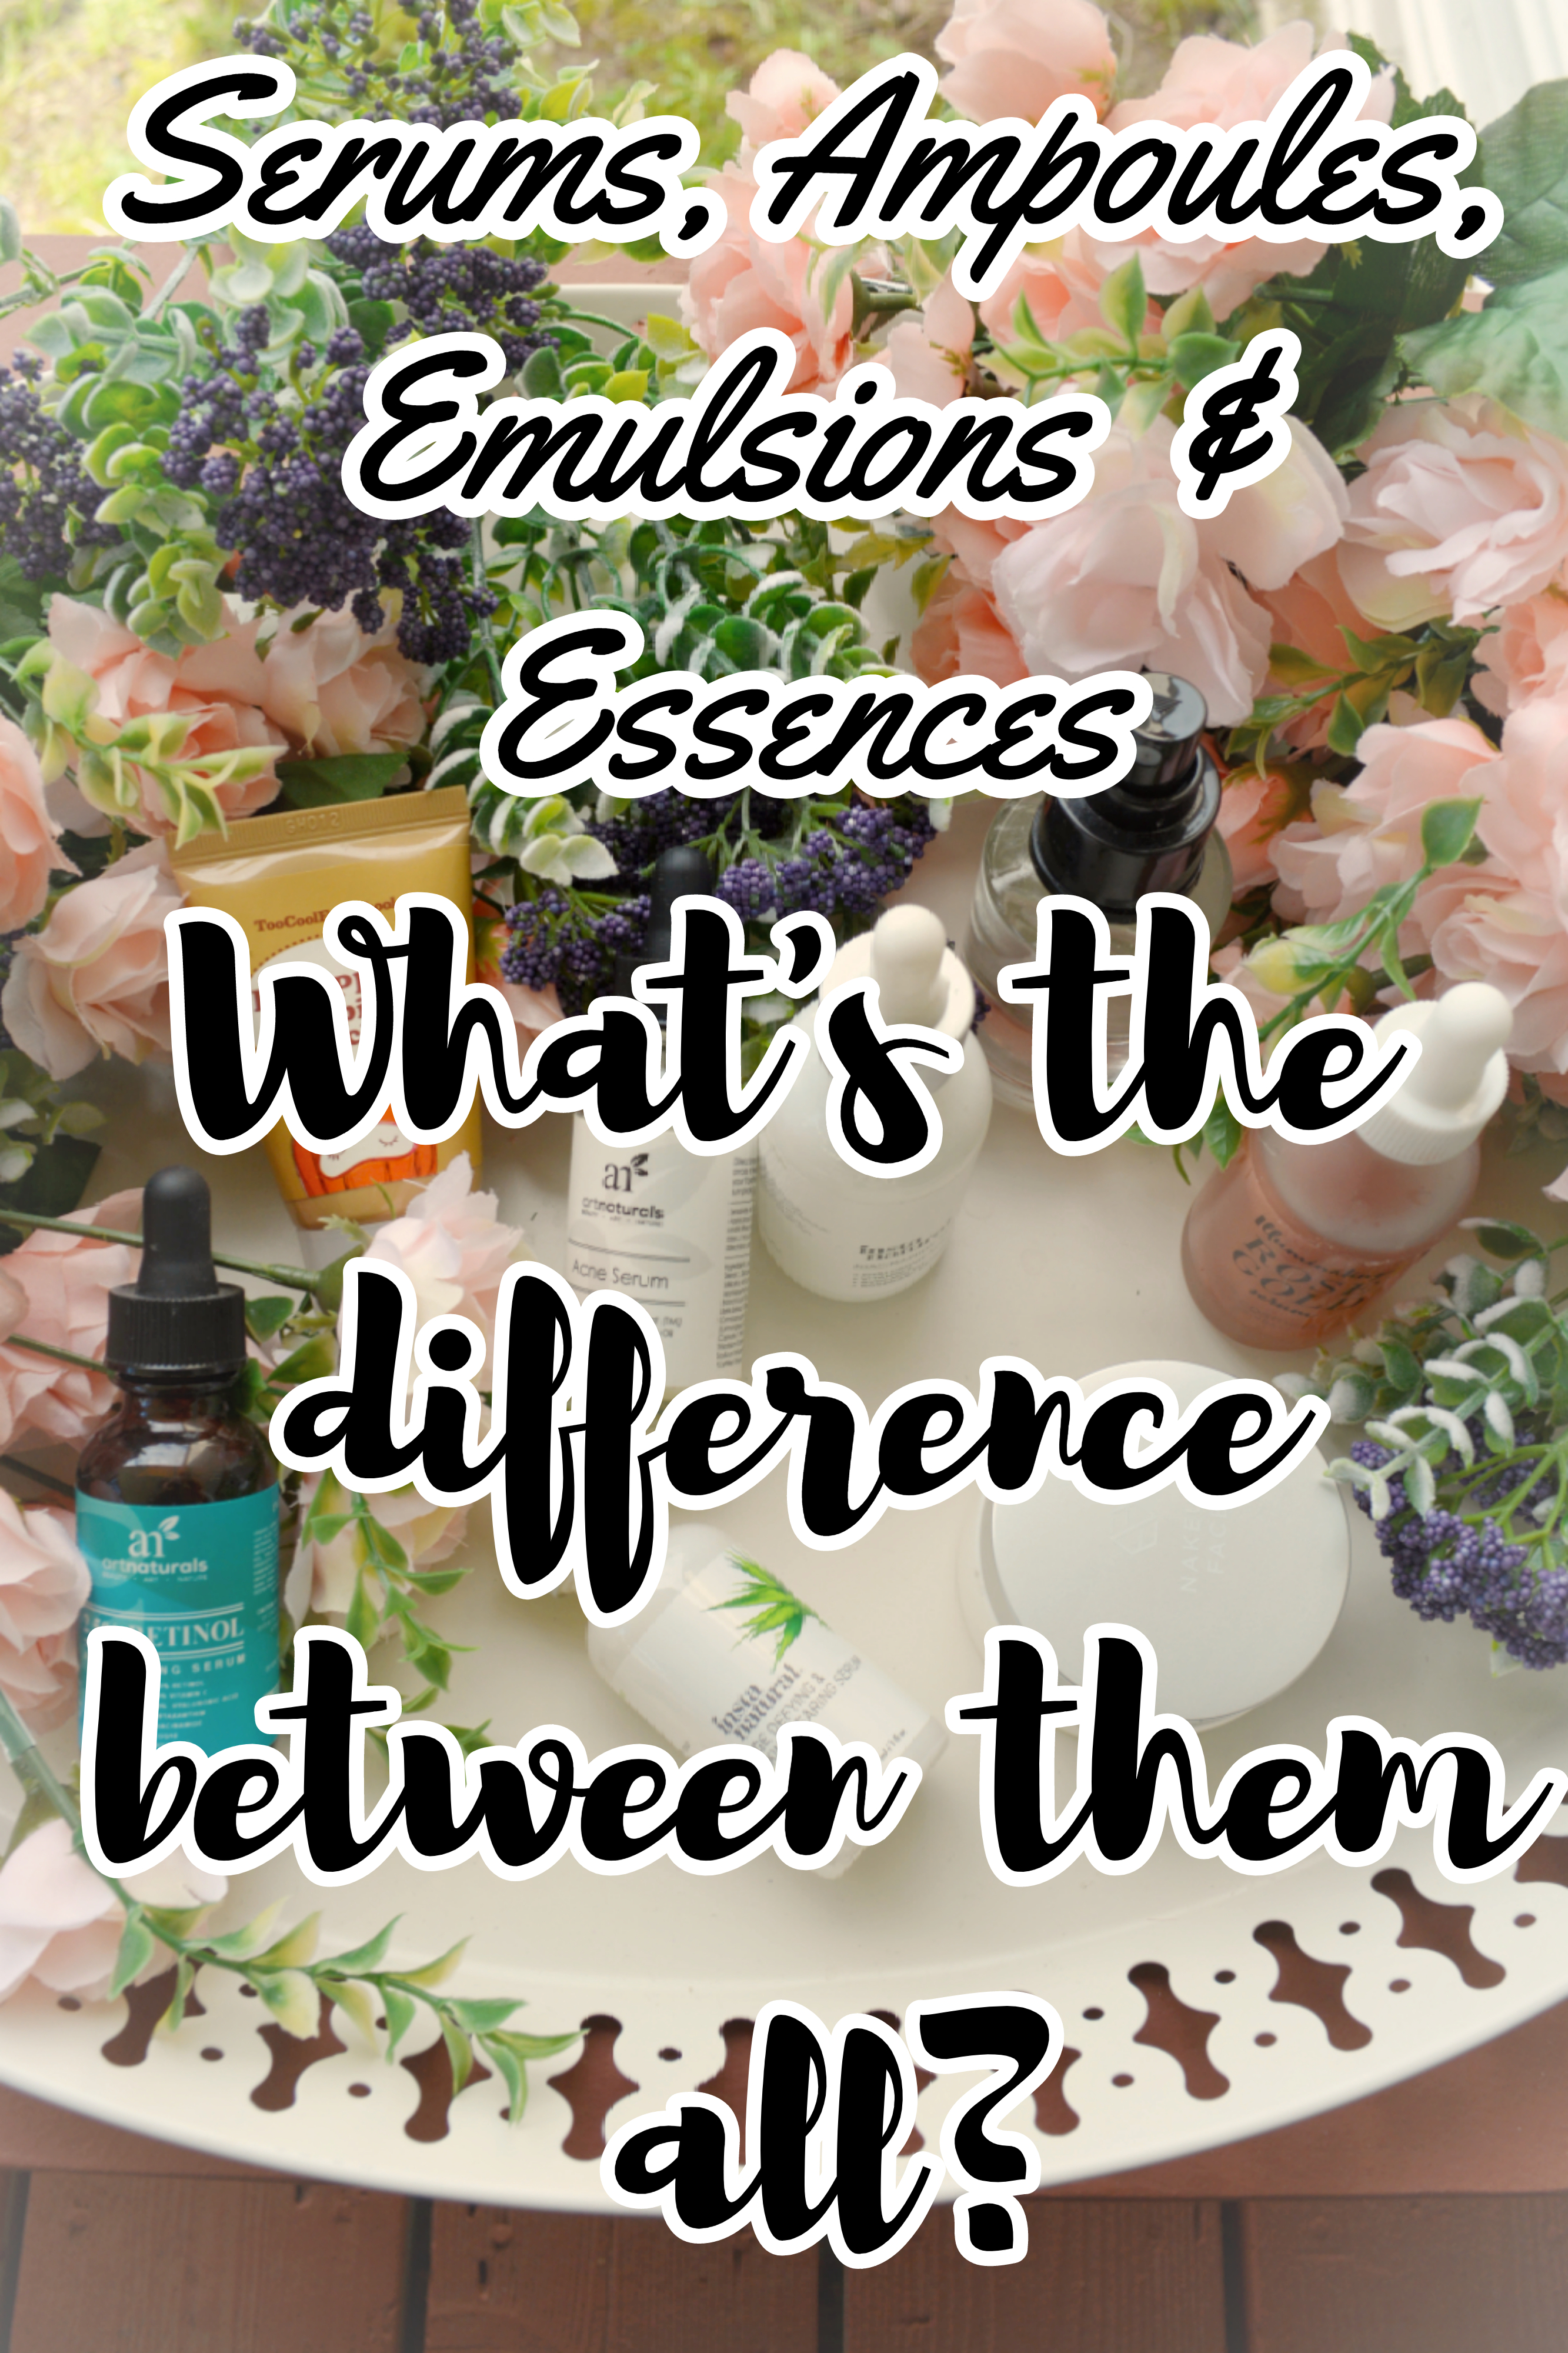 Serums, ampoules, essences, and emulsions, what's the difference between them?